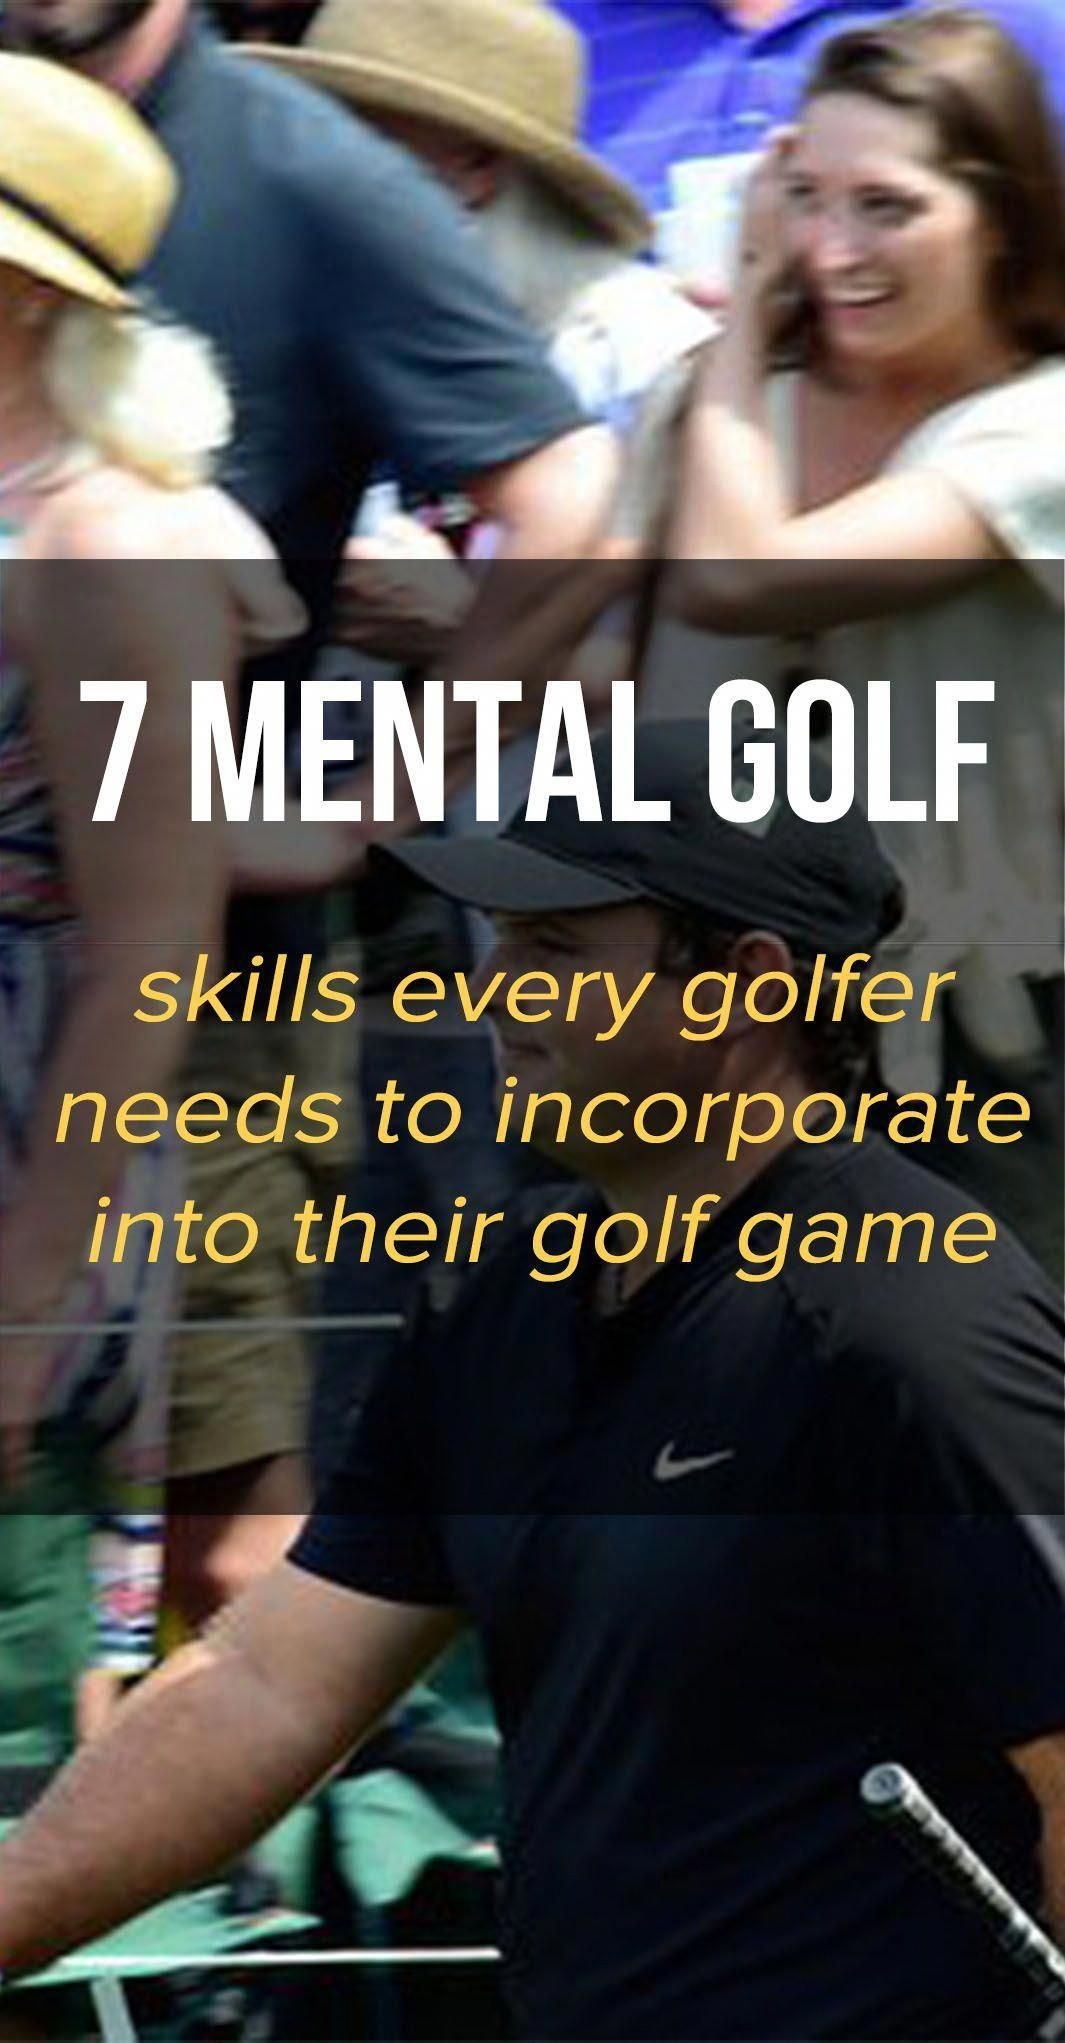 Getting good at golf requires a lot of mental golf skills ...